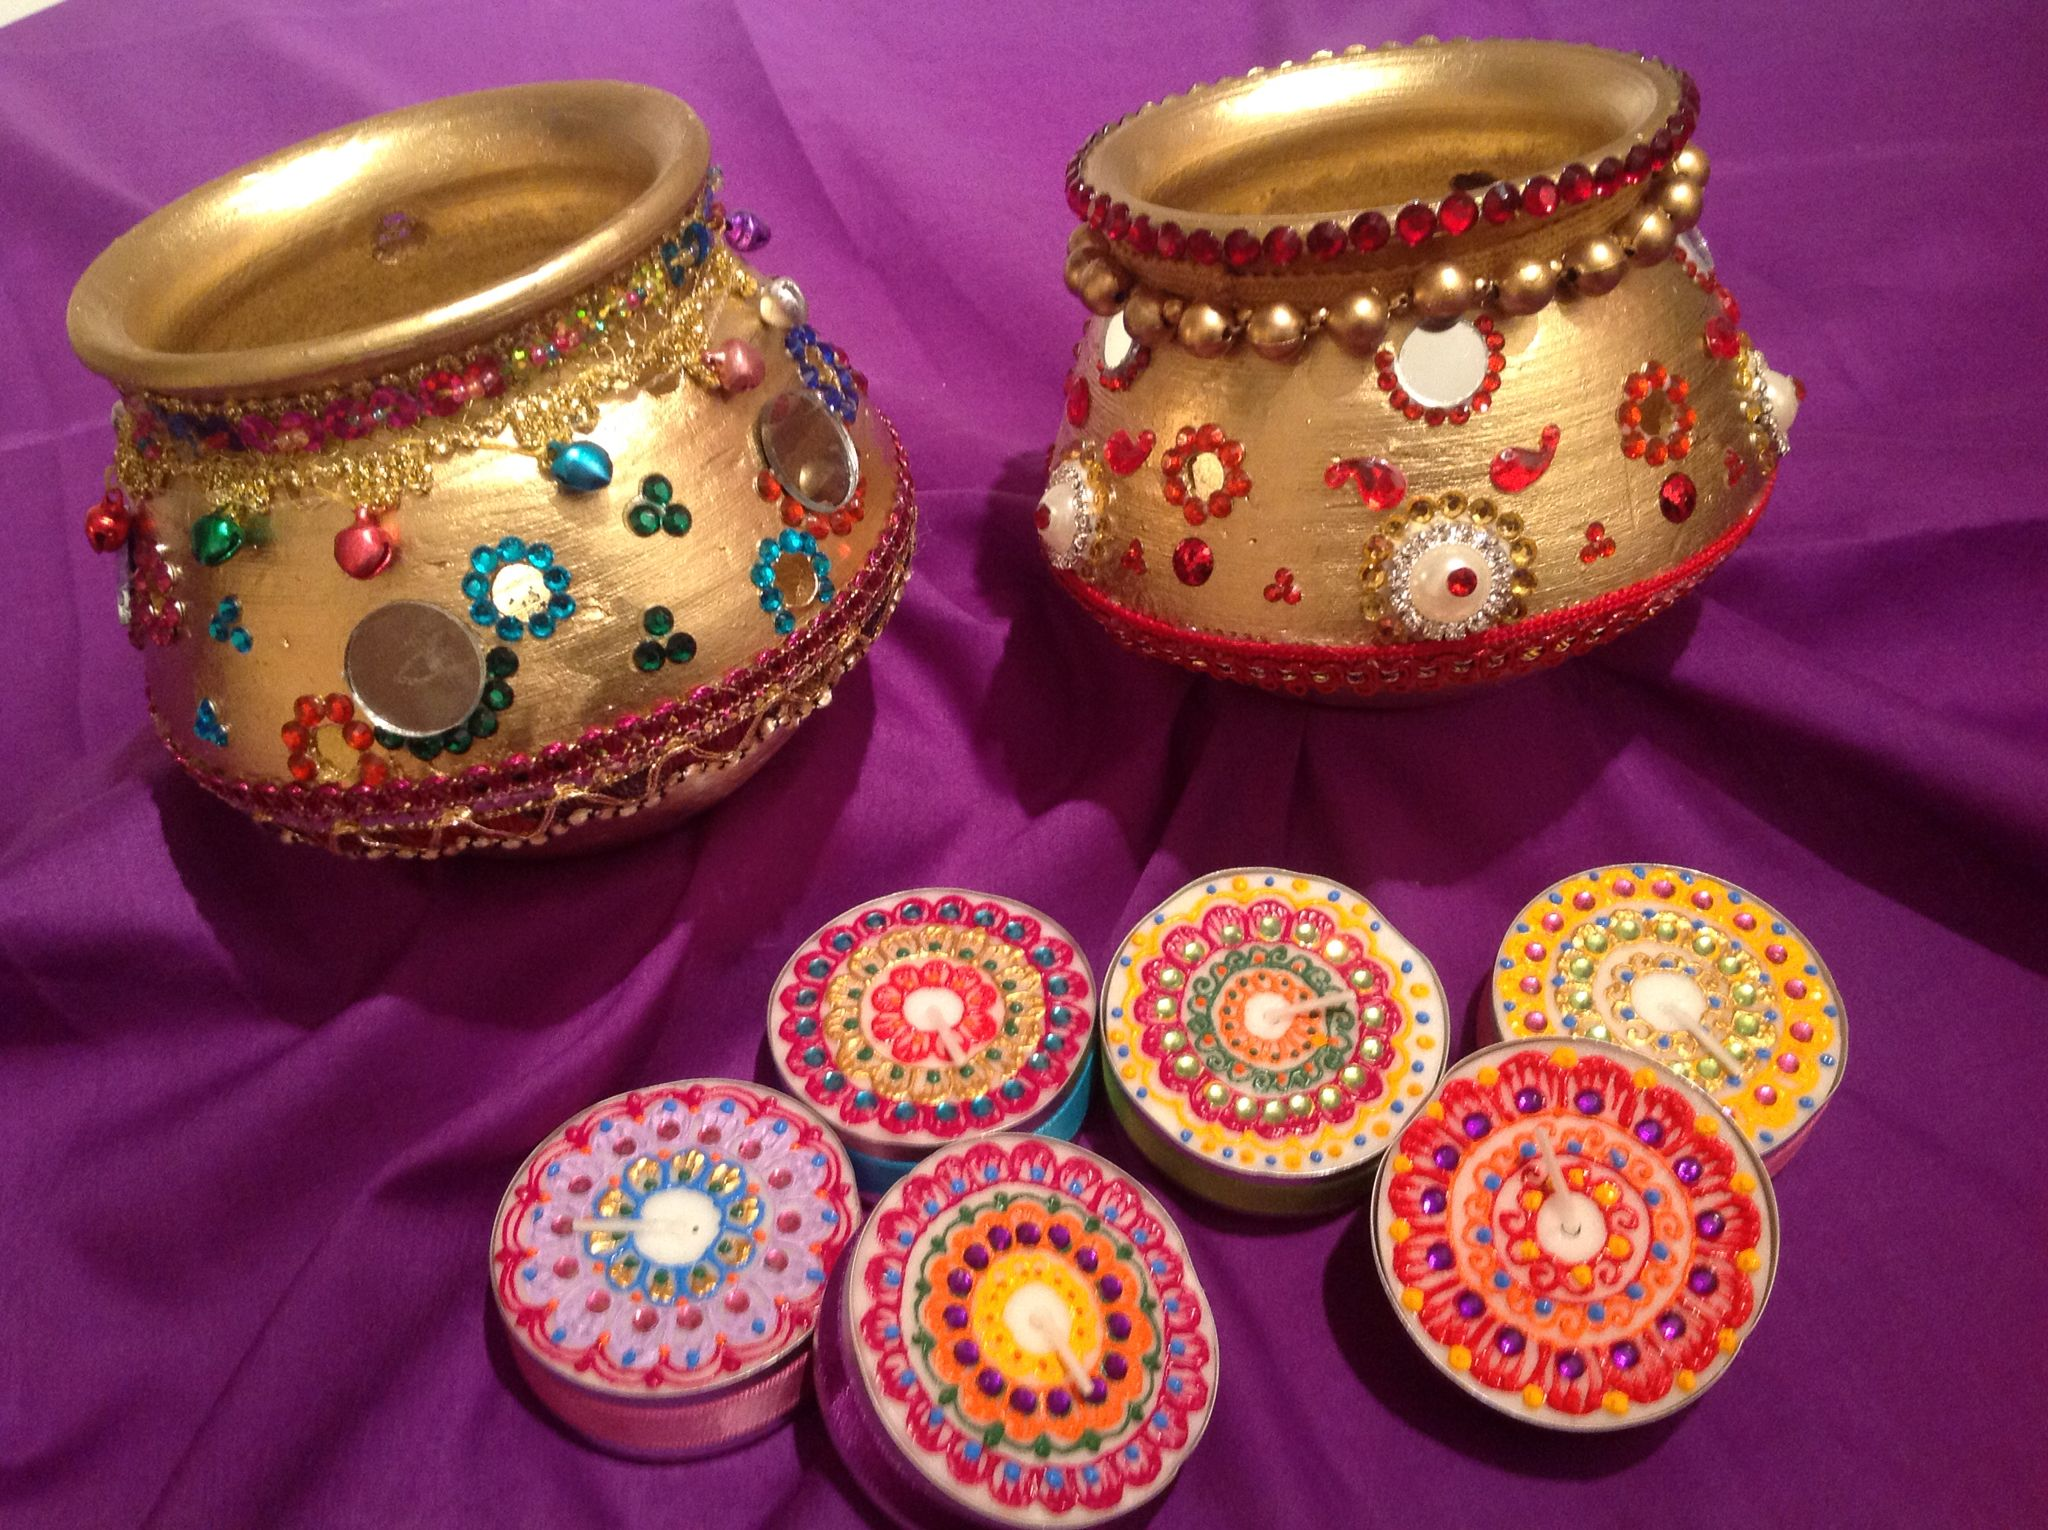 Indian Wedding Tray Decoration Hand Decorated Mutki Pots Lovely As Table Decor For Mehndi